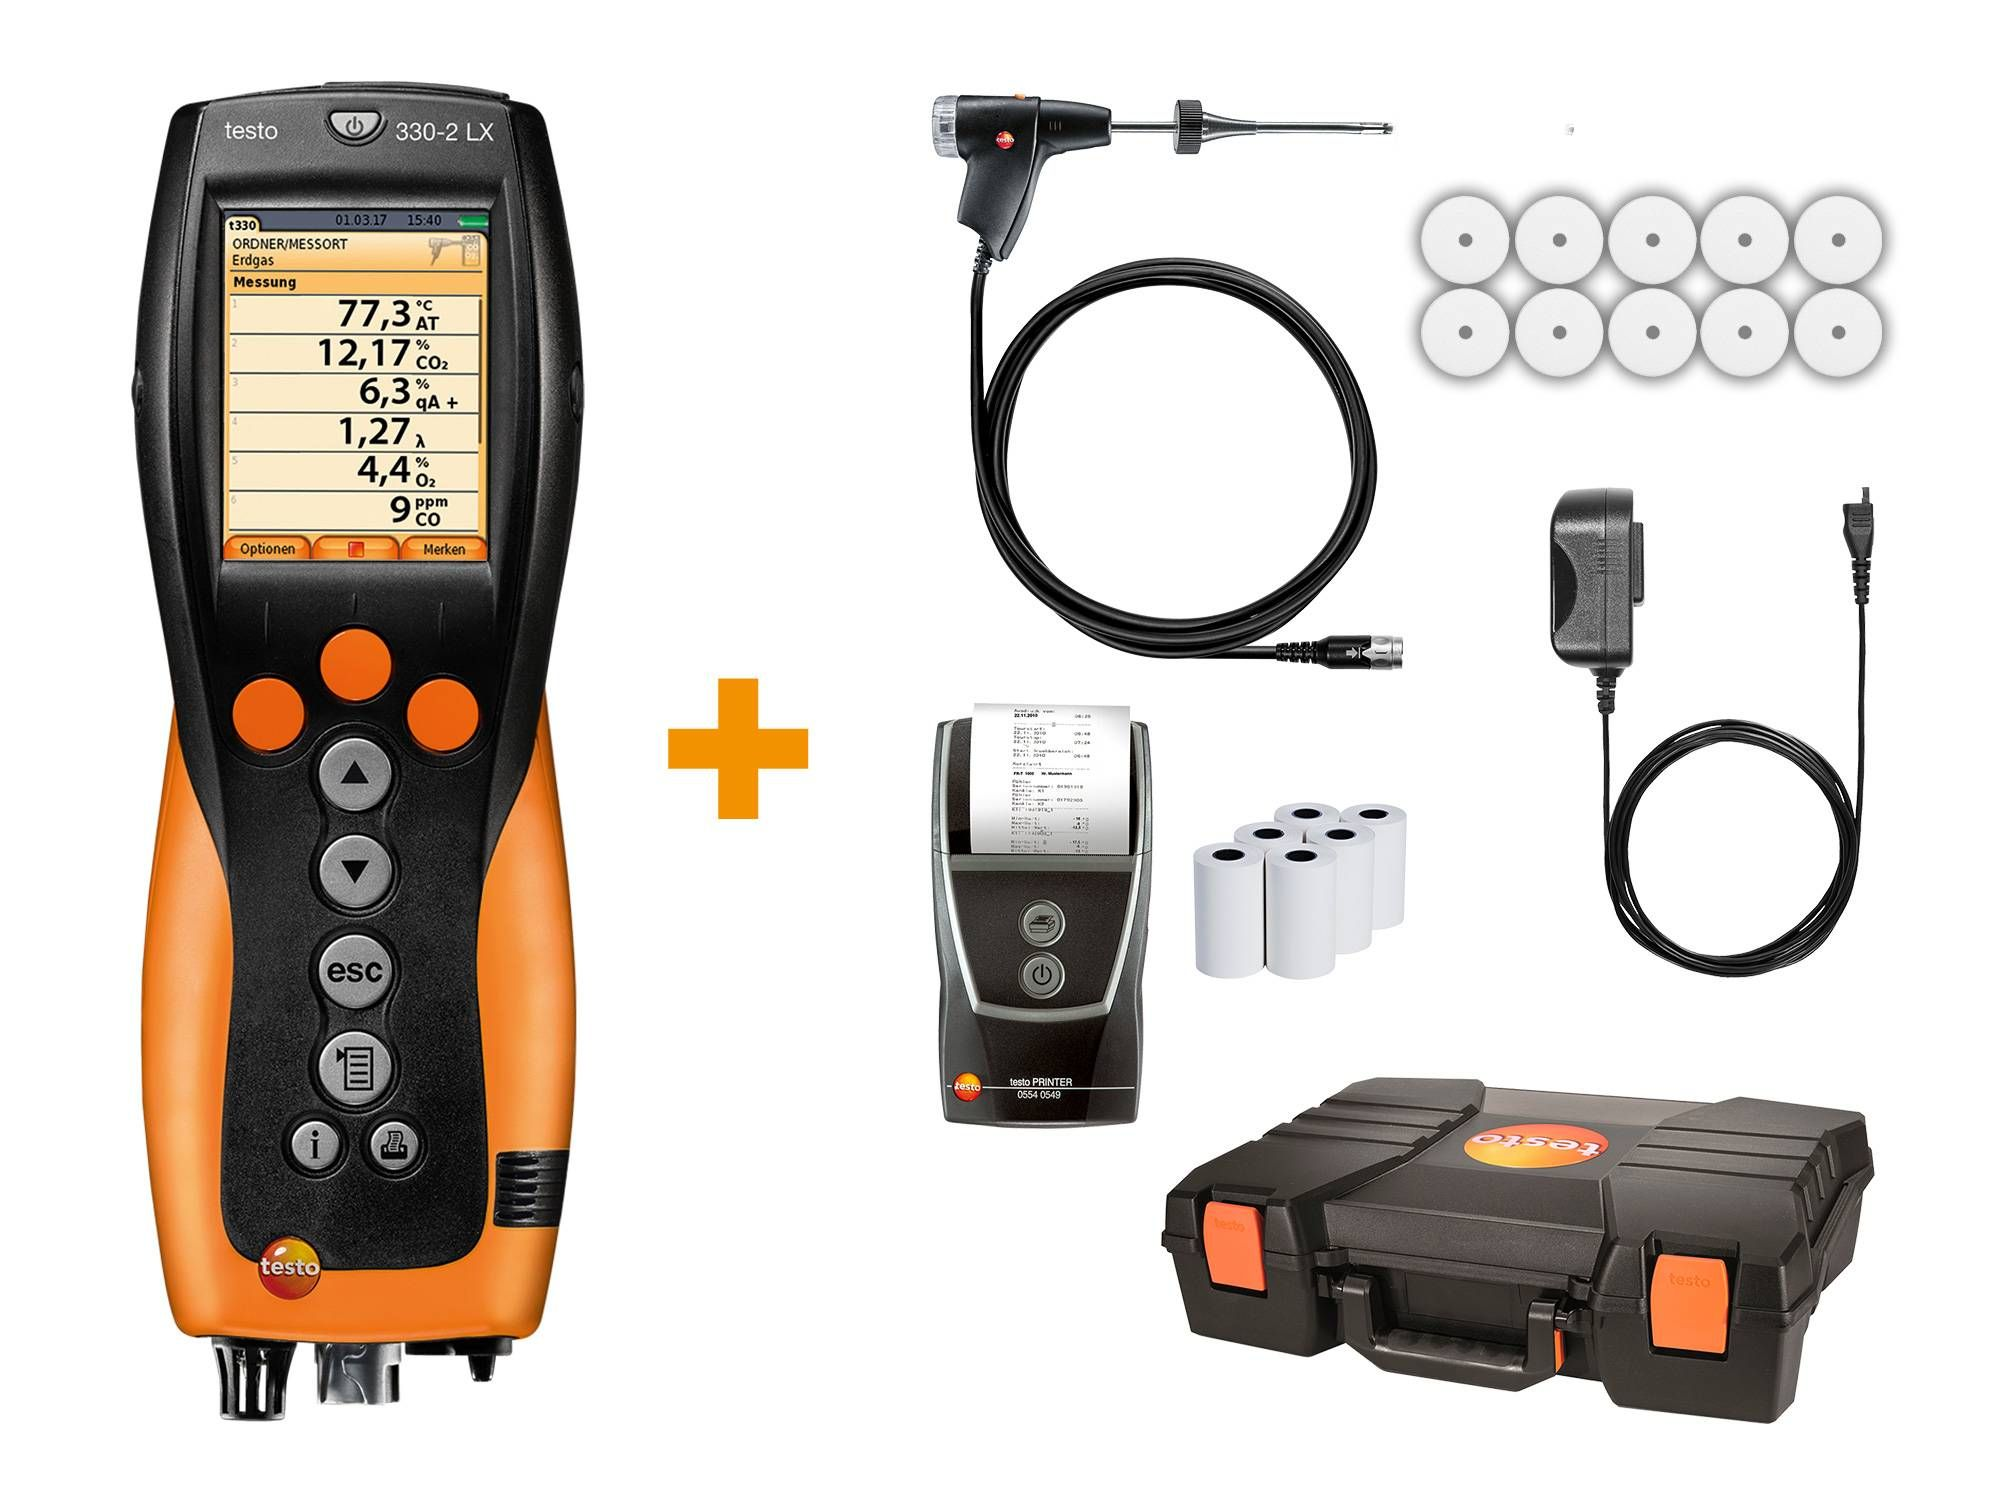 Analyseur de combustion testo 330-2 LX